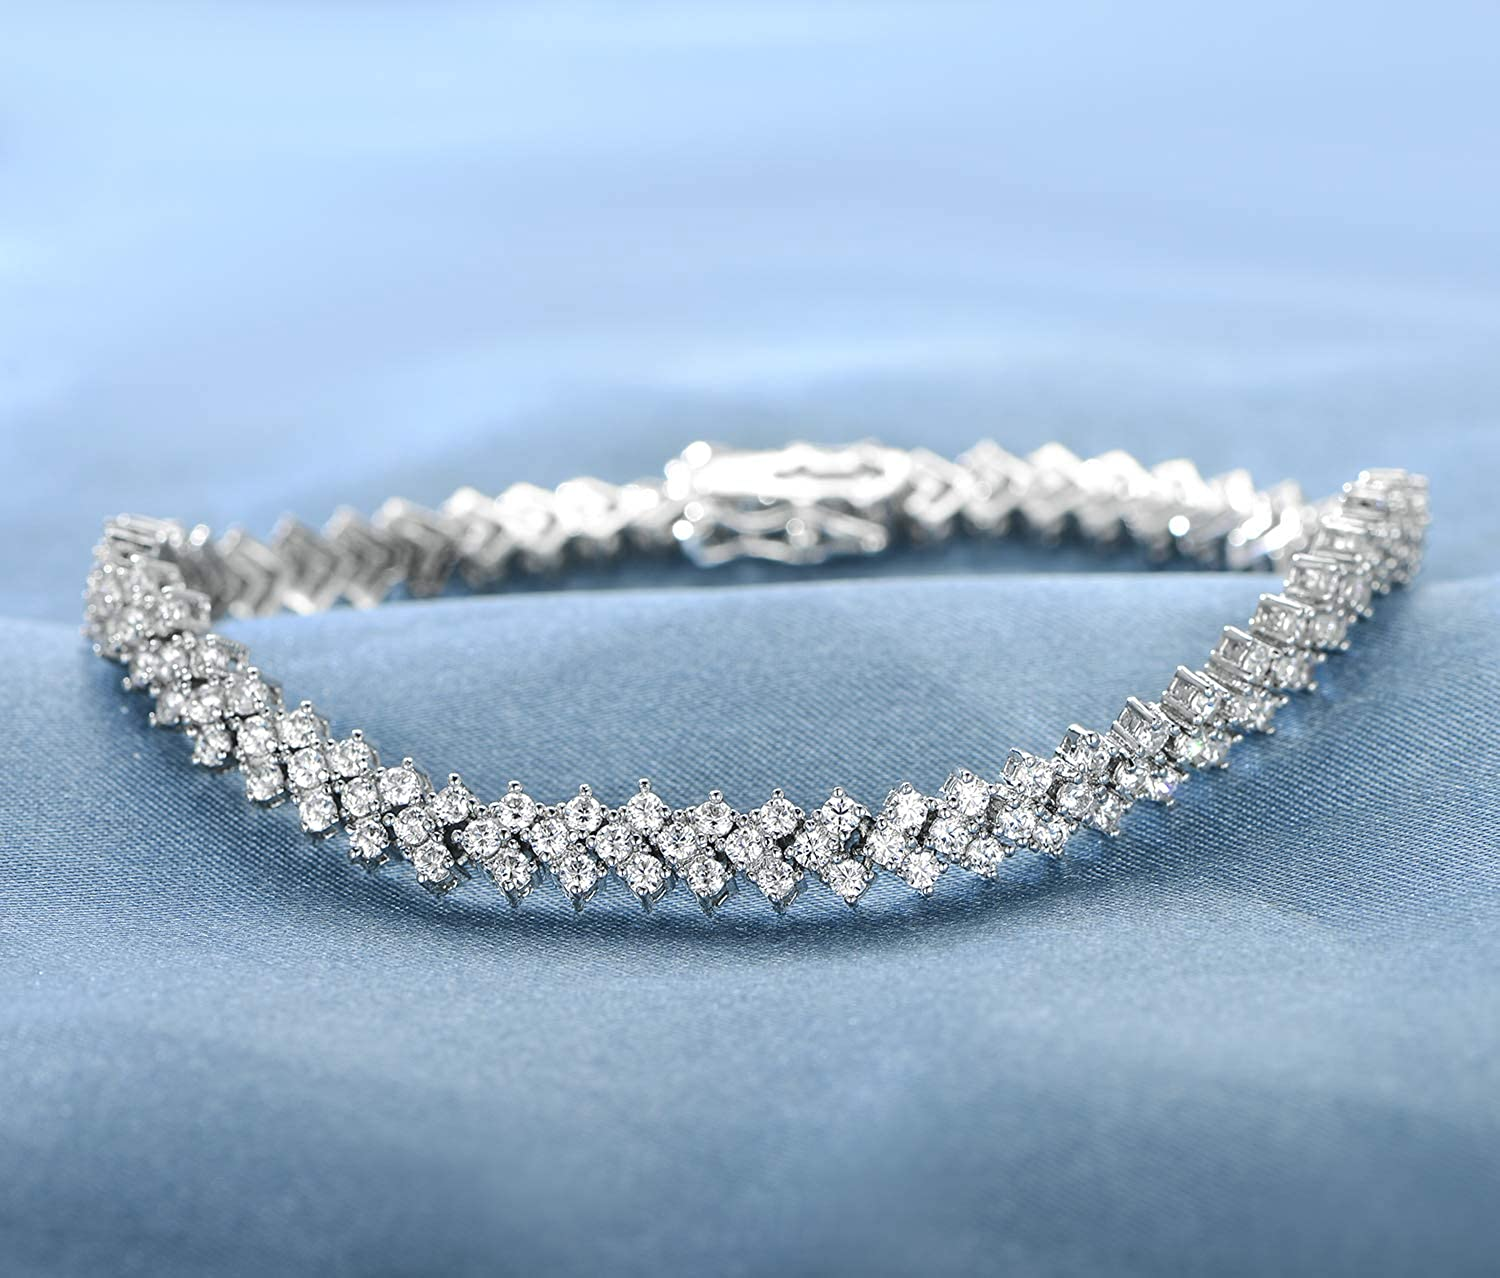 OPALBEST 18K White Gold//Gold Plated Cubic Zirconia Classic Tennis Bracelet for Women 7.5 Inch